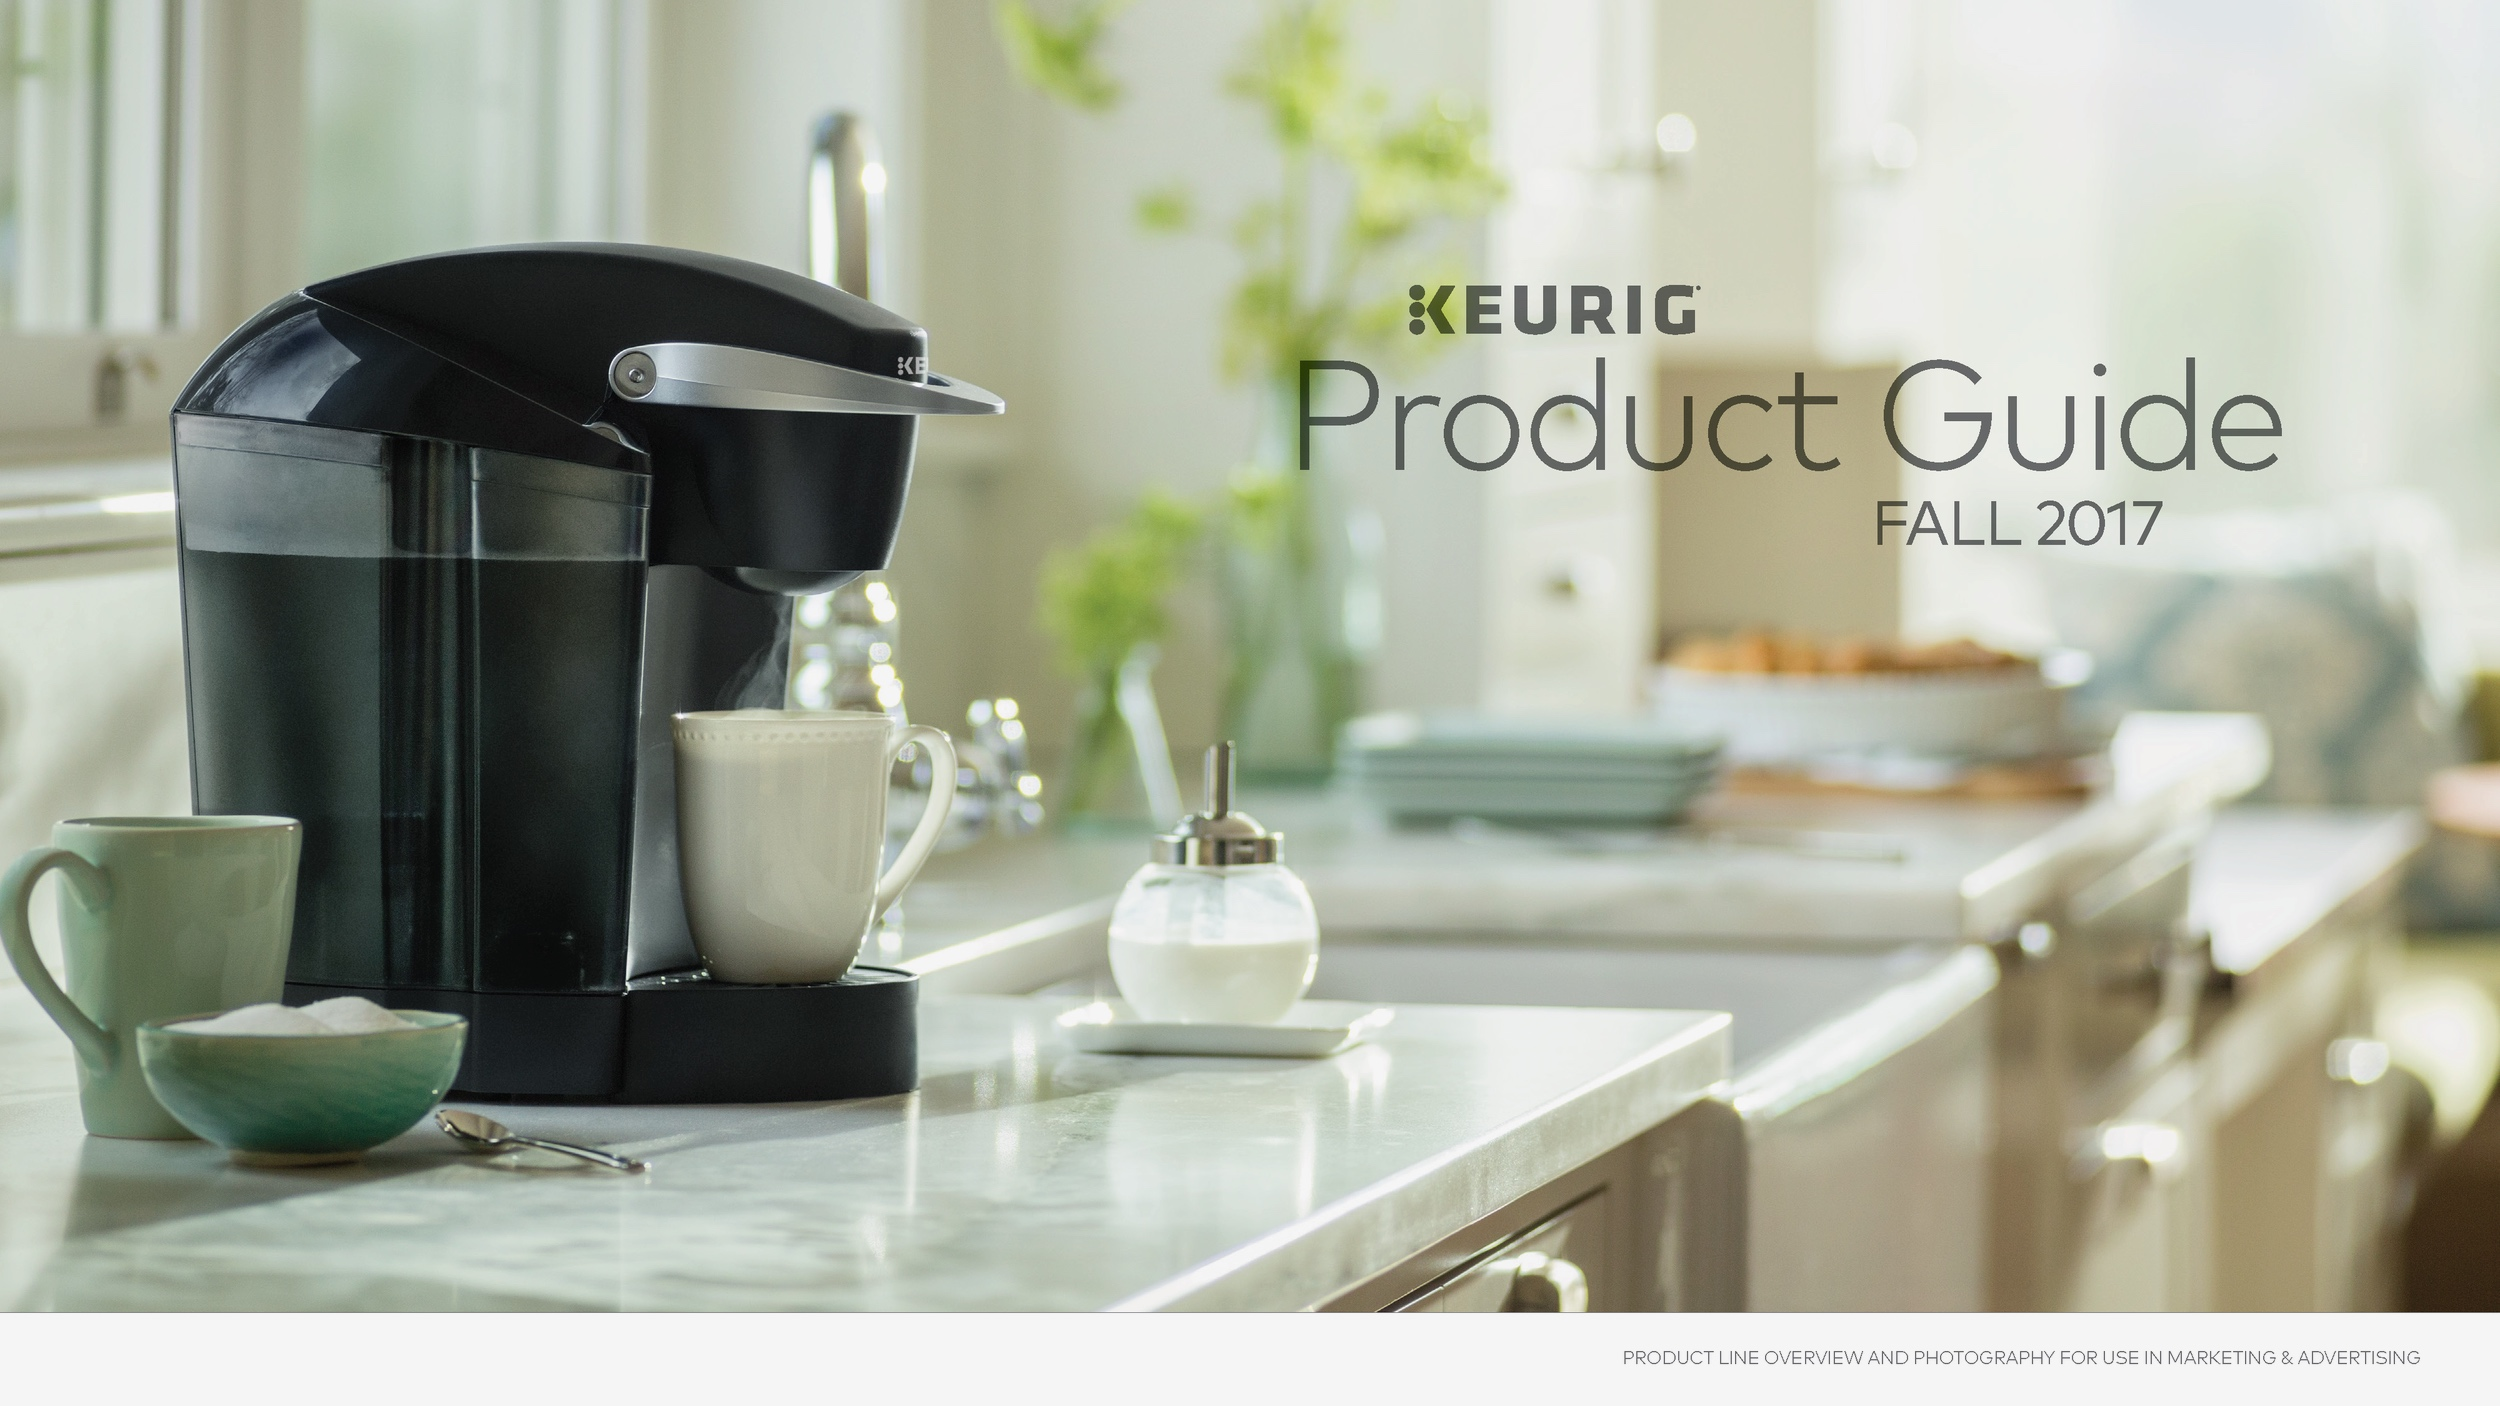 keurig_product_guide_F17_R8_Page_01.png